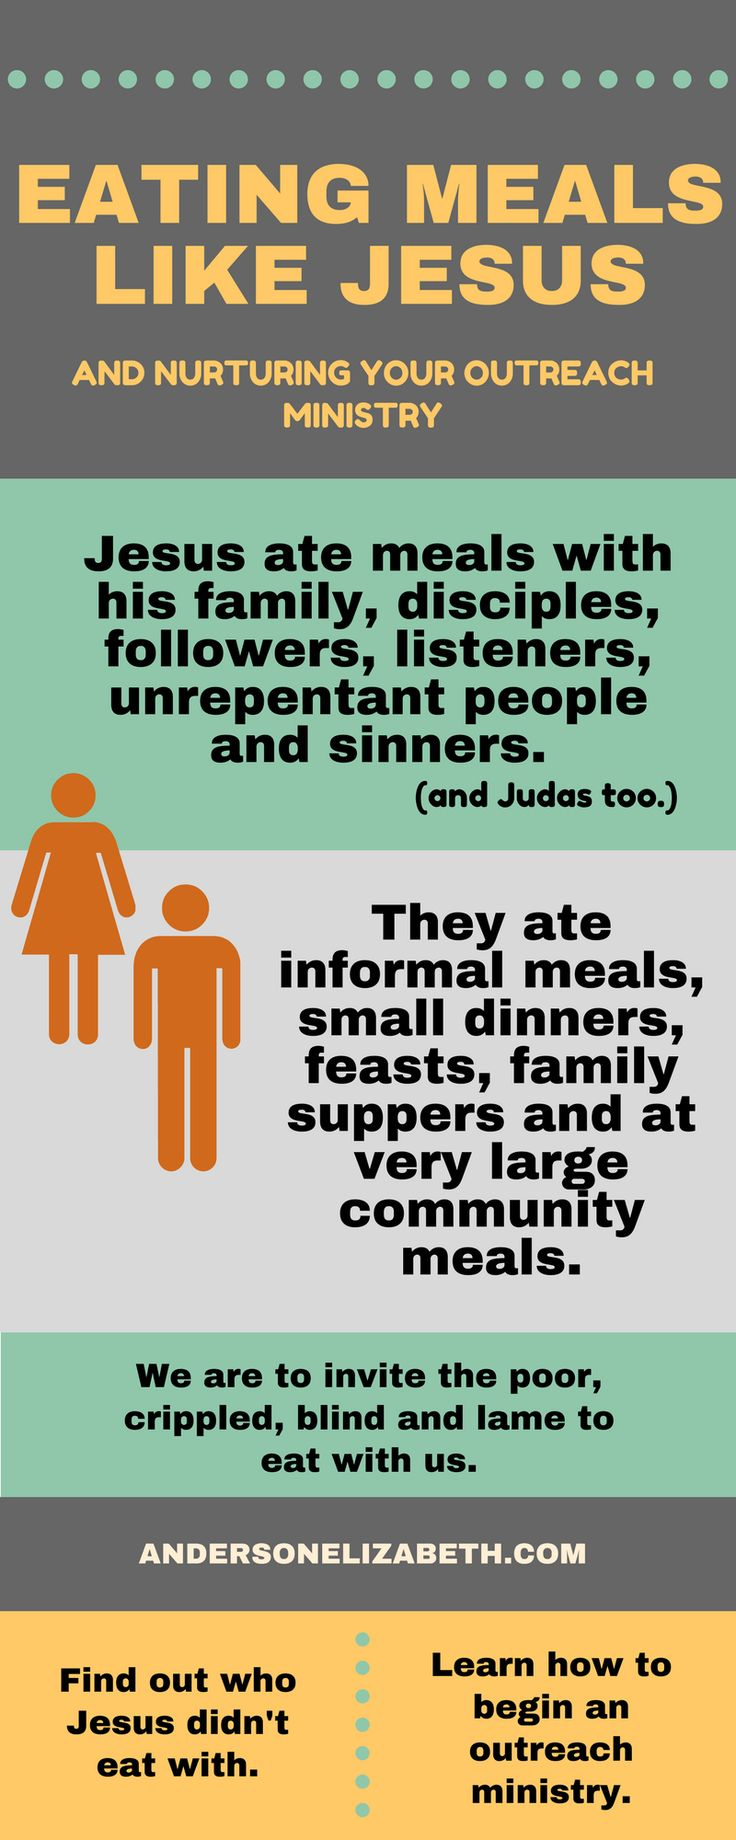 An important part of Jesus' ministry was sharing meals with people. Read about the different types of meals that Jesus had and the people he ate with.